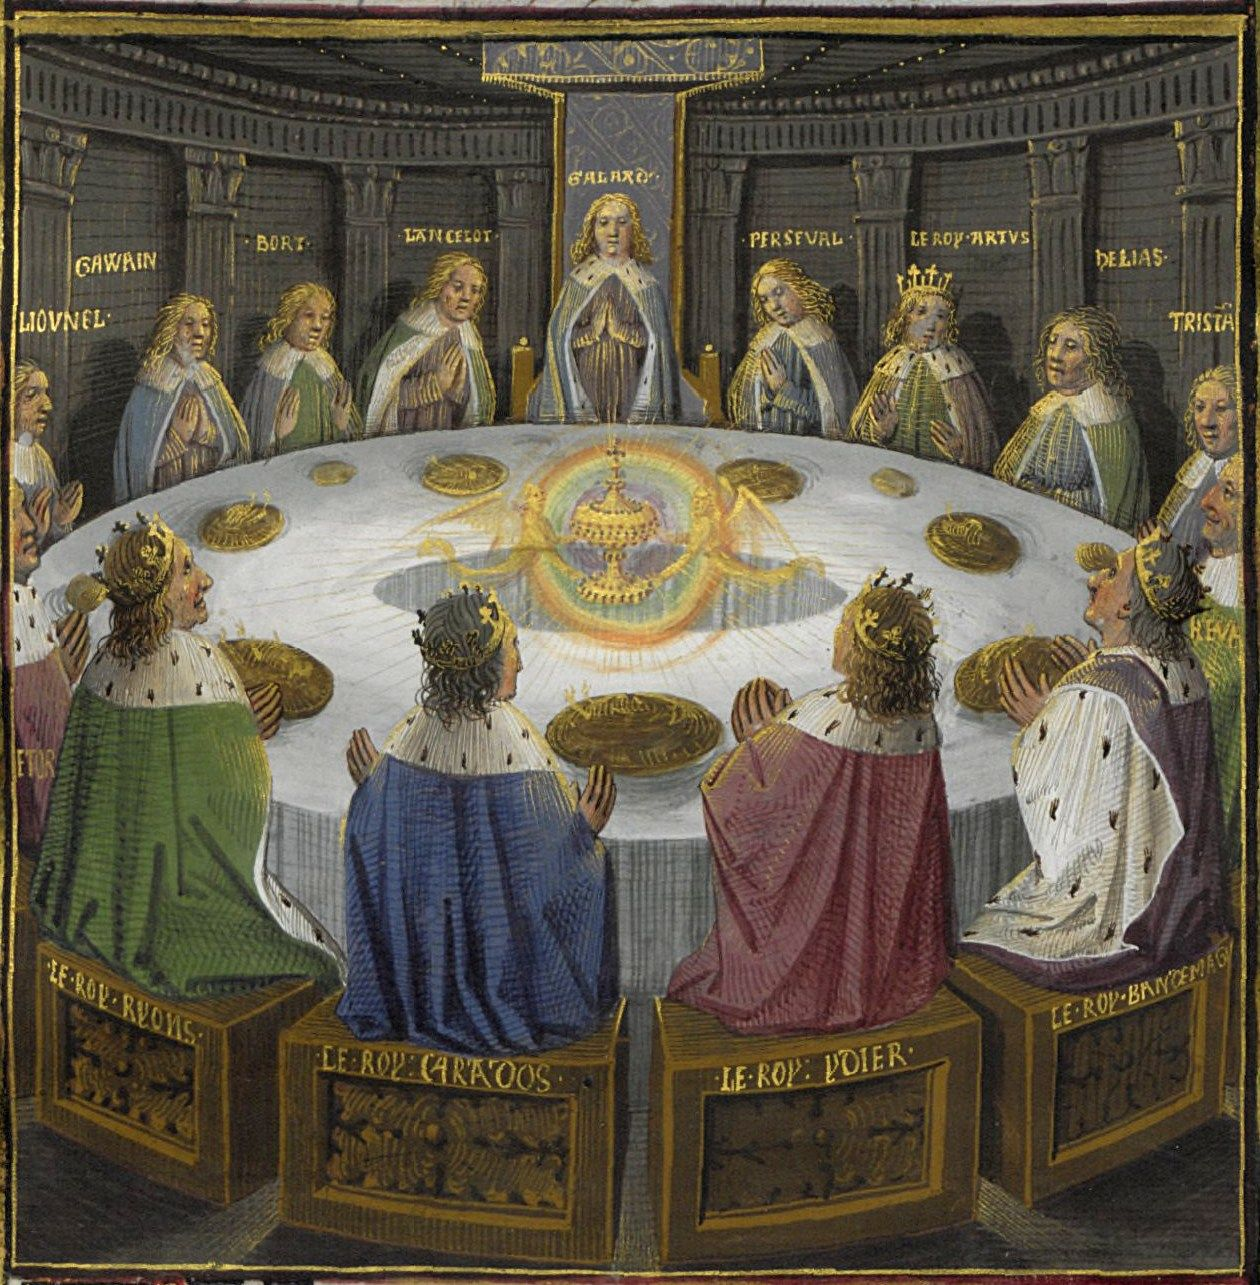 An illustration of King Arthur's knights at the round table seeing a vision of the holy grail